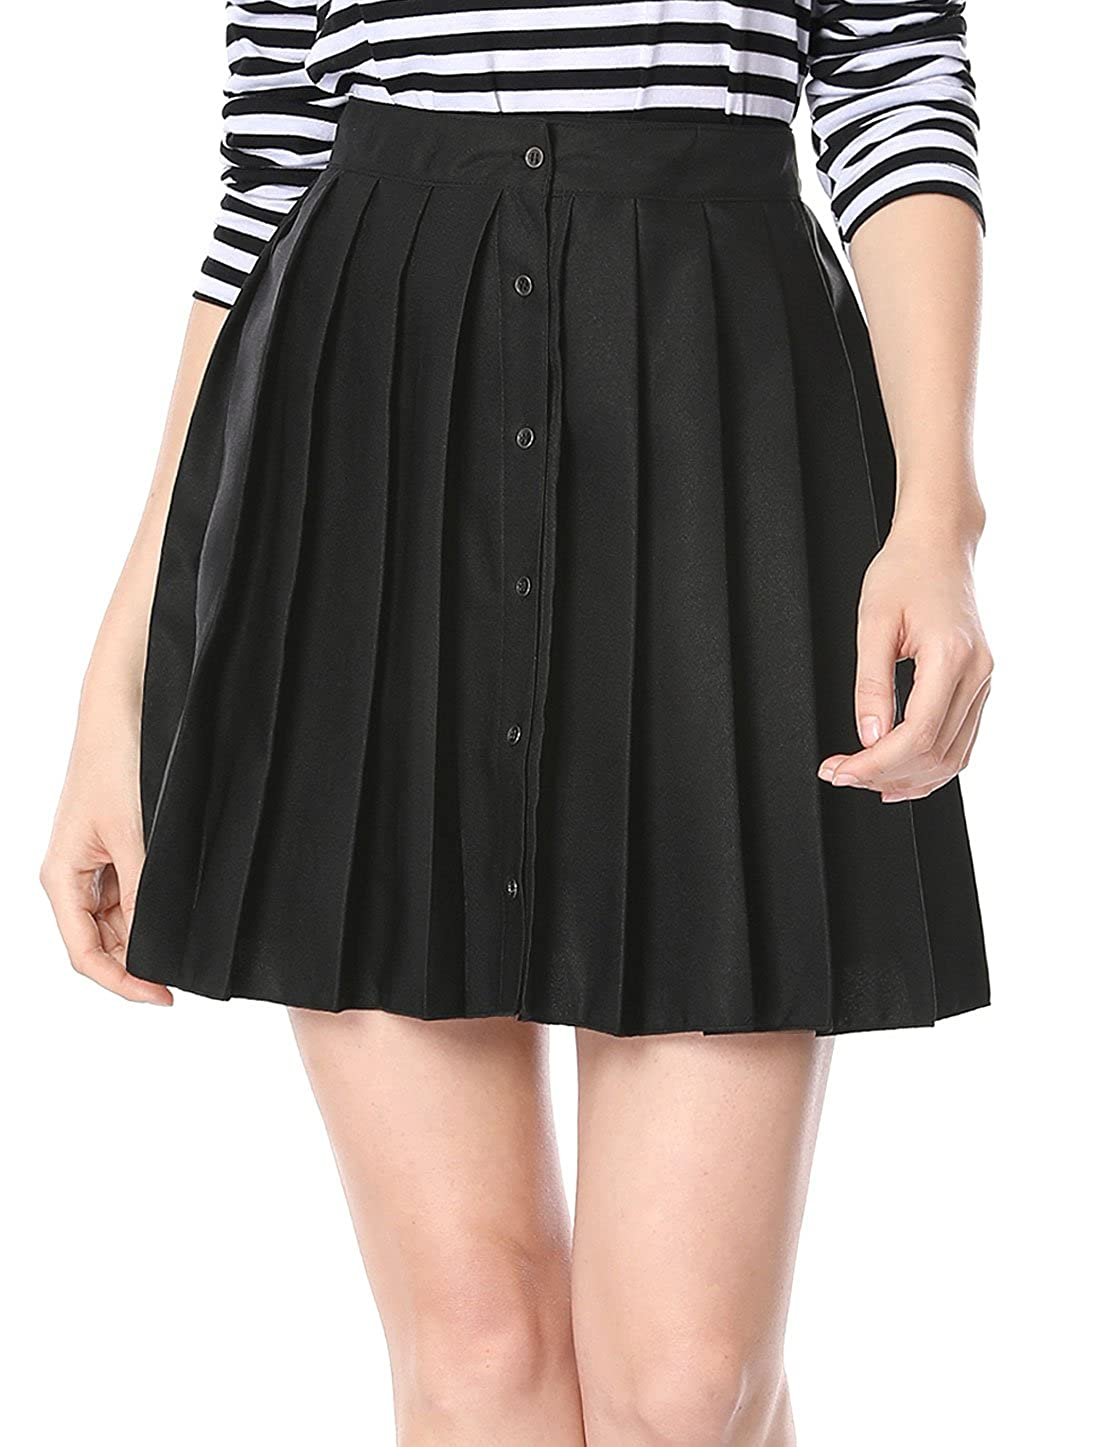 Allegra K Women's Pleated Button Closure Front Above Knee A-line Skirt